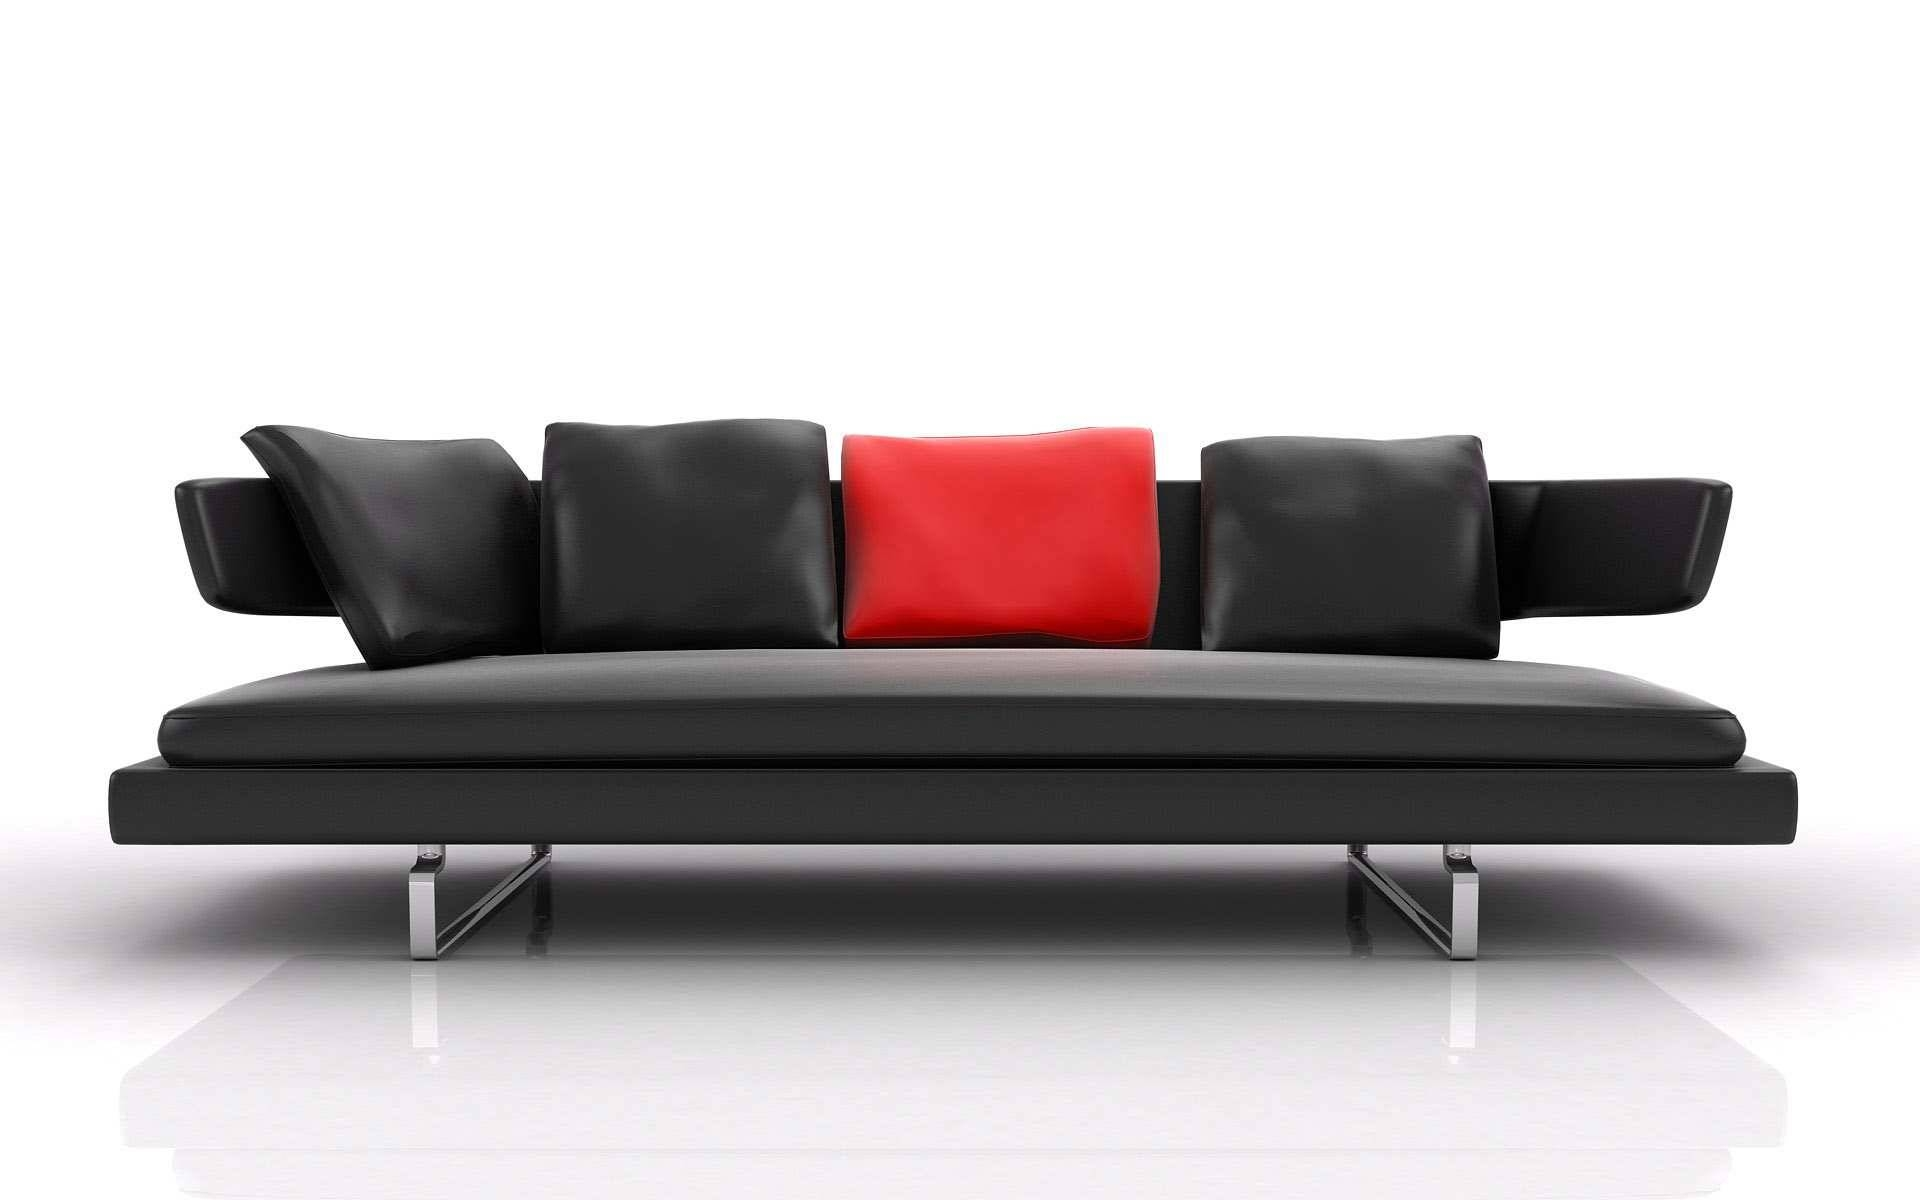 Awesome Cool Sofa Photo Decoration Ideas - Andrea Outloud with regard to Cool Sofa Ideas (Image 3 of 30)